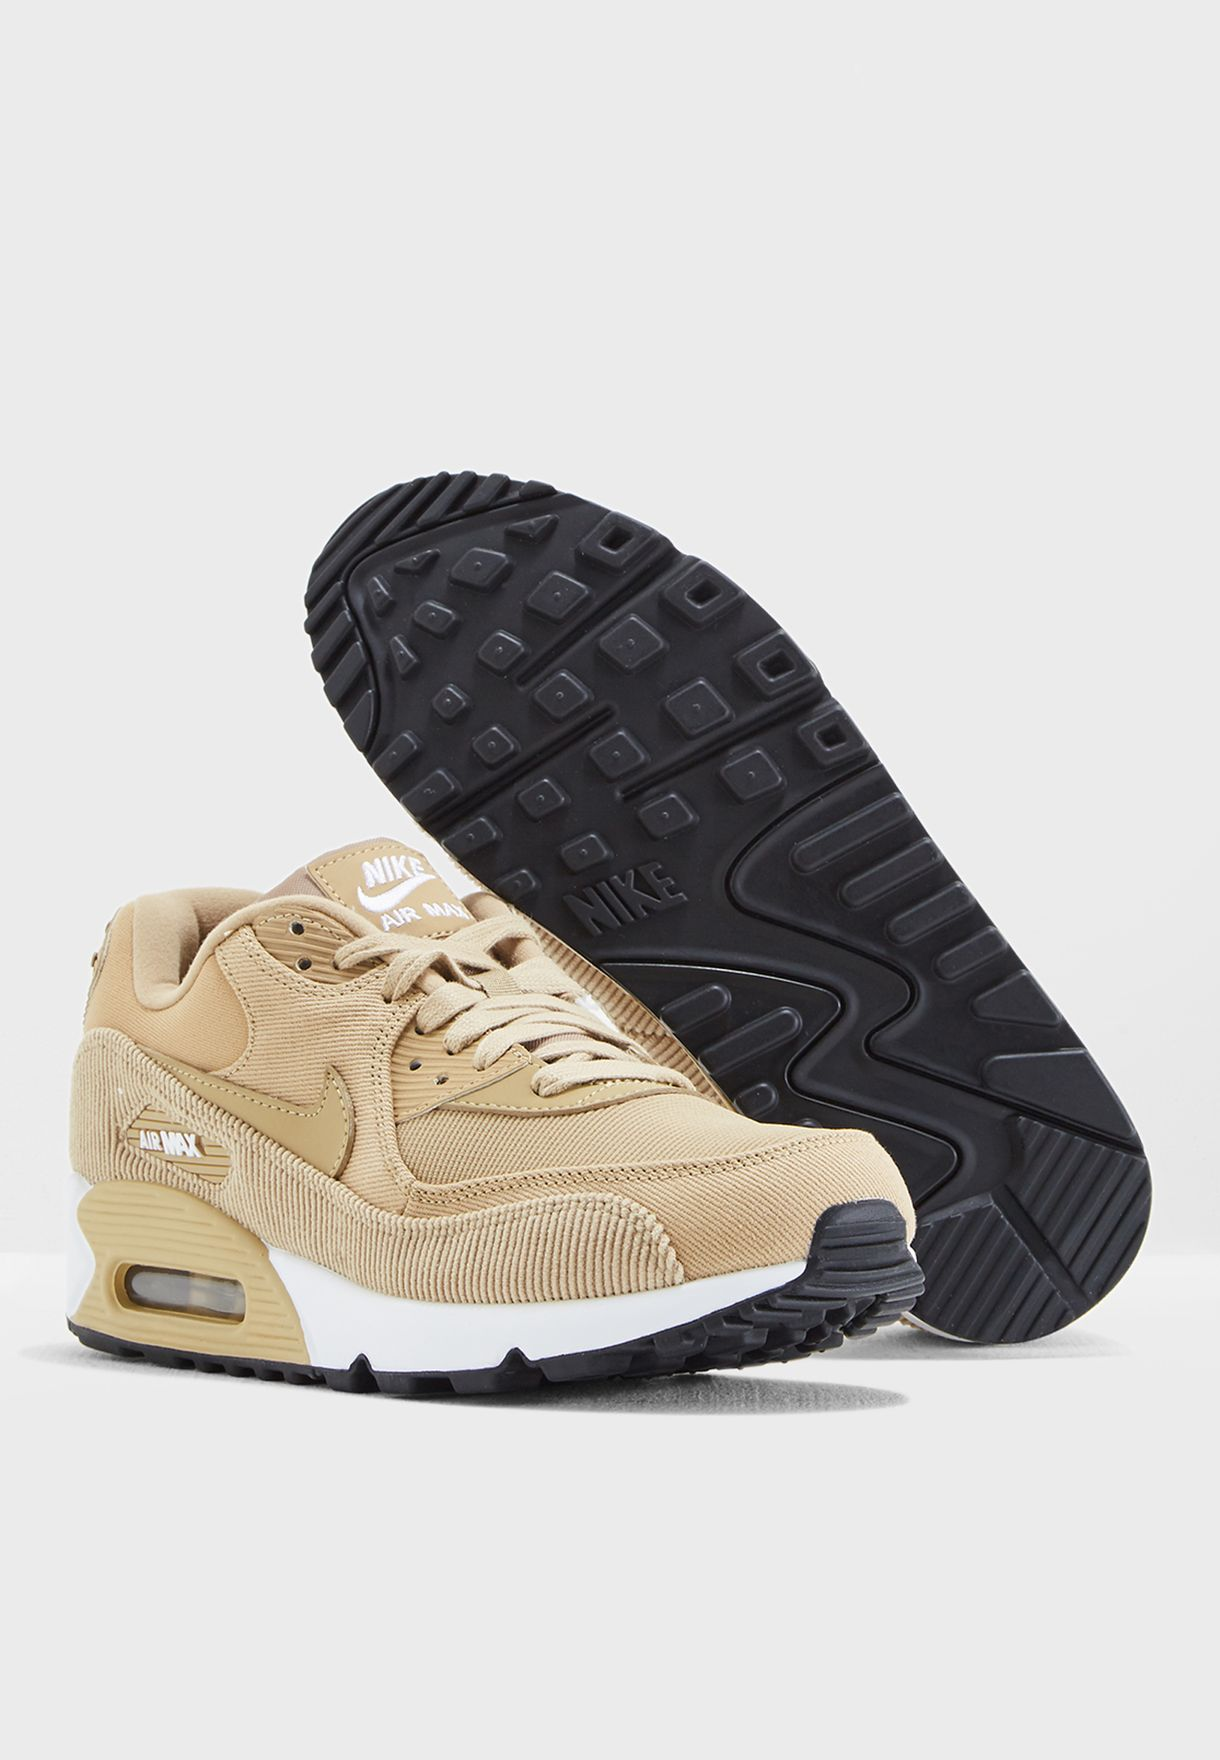 new product 19b61 1f942 Shop Nike beige Air Max 90 Lea 921304-200 for Women in UAE ...